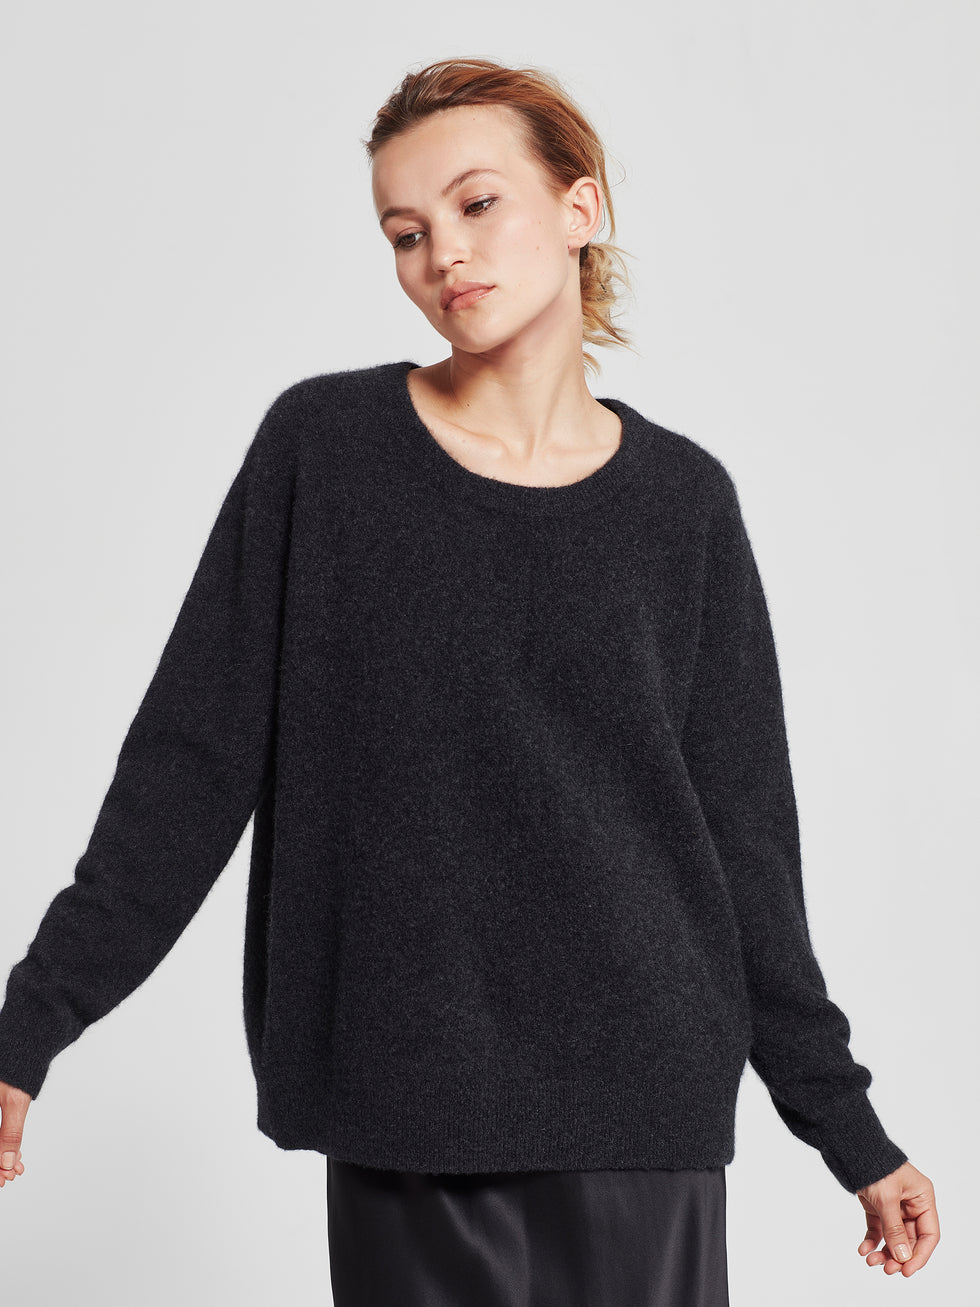 Chester Sweater (Cashmere) Graphite